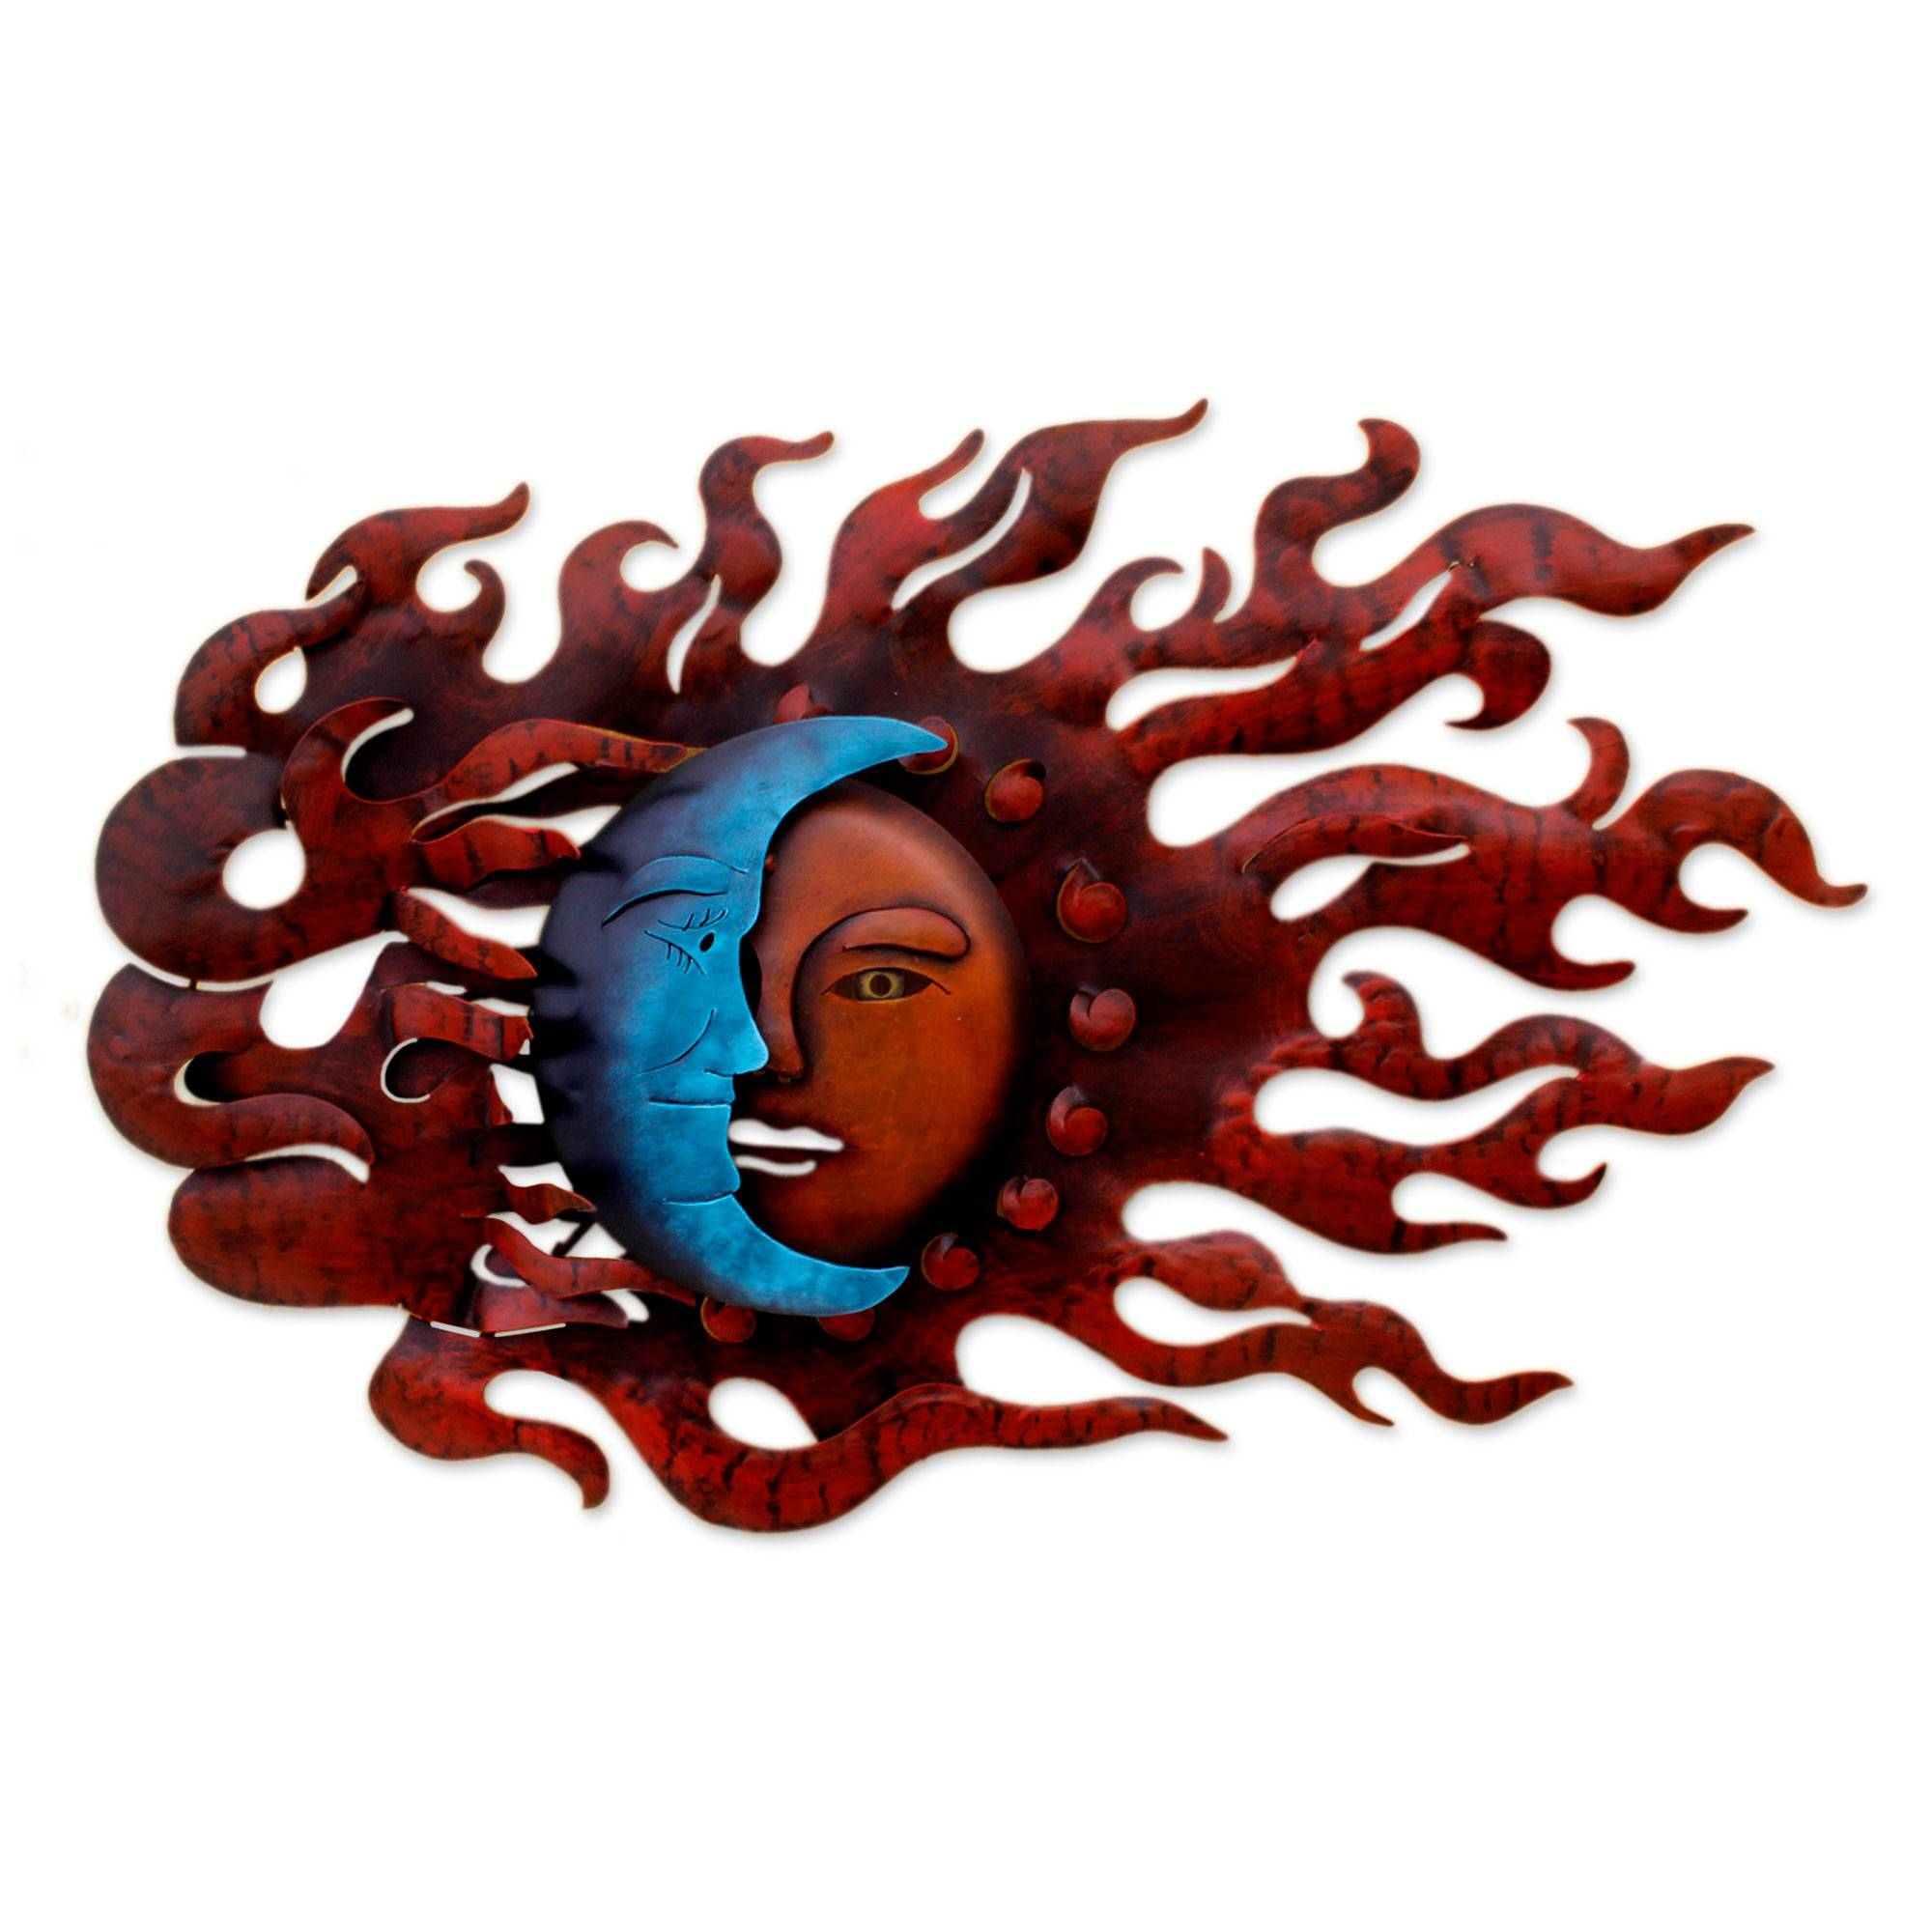 Sun Wall Art fair trade sun and moon steel wall art - high wind eclipse | novica